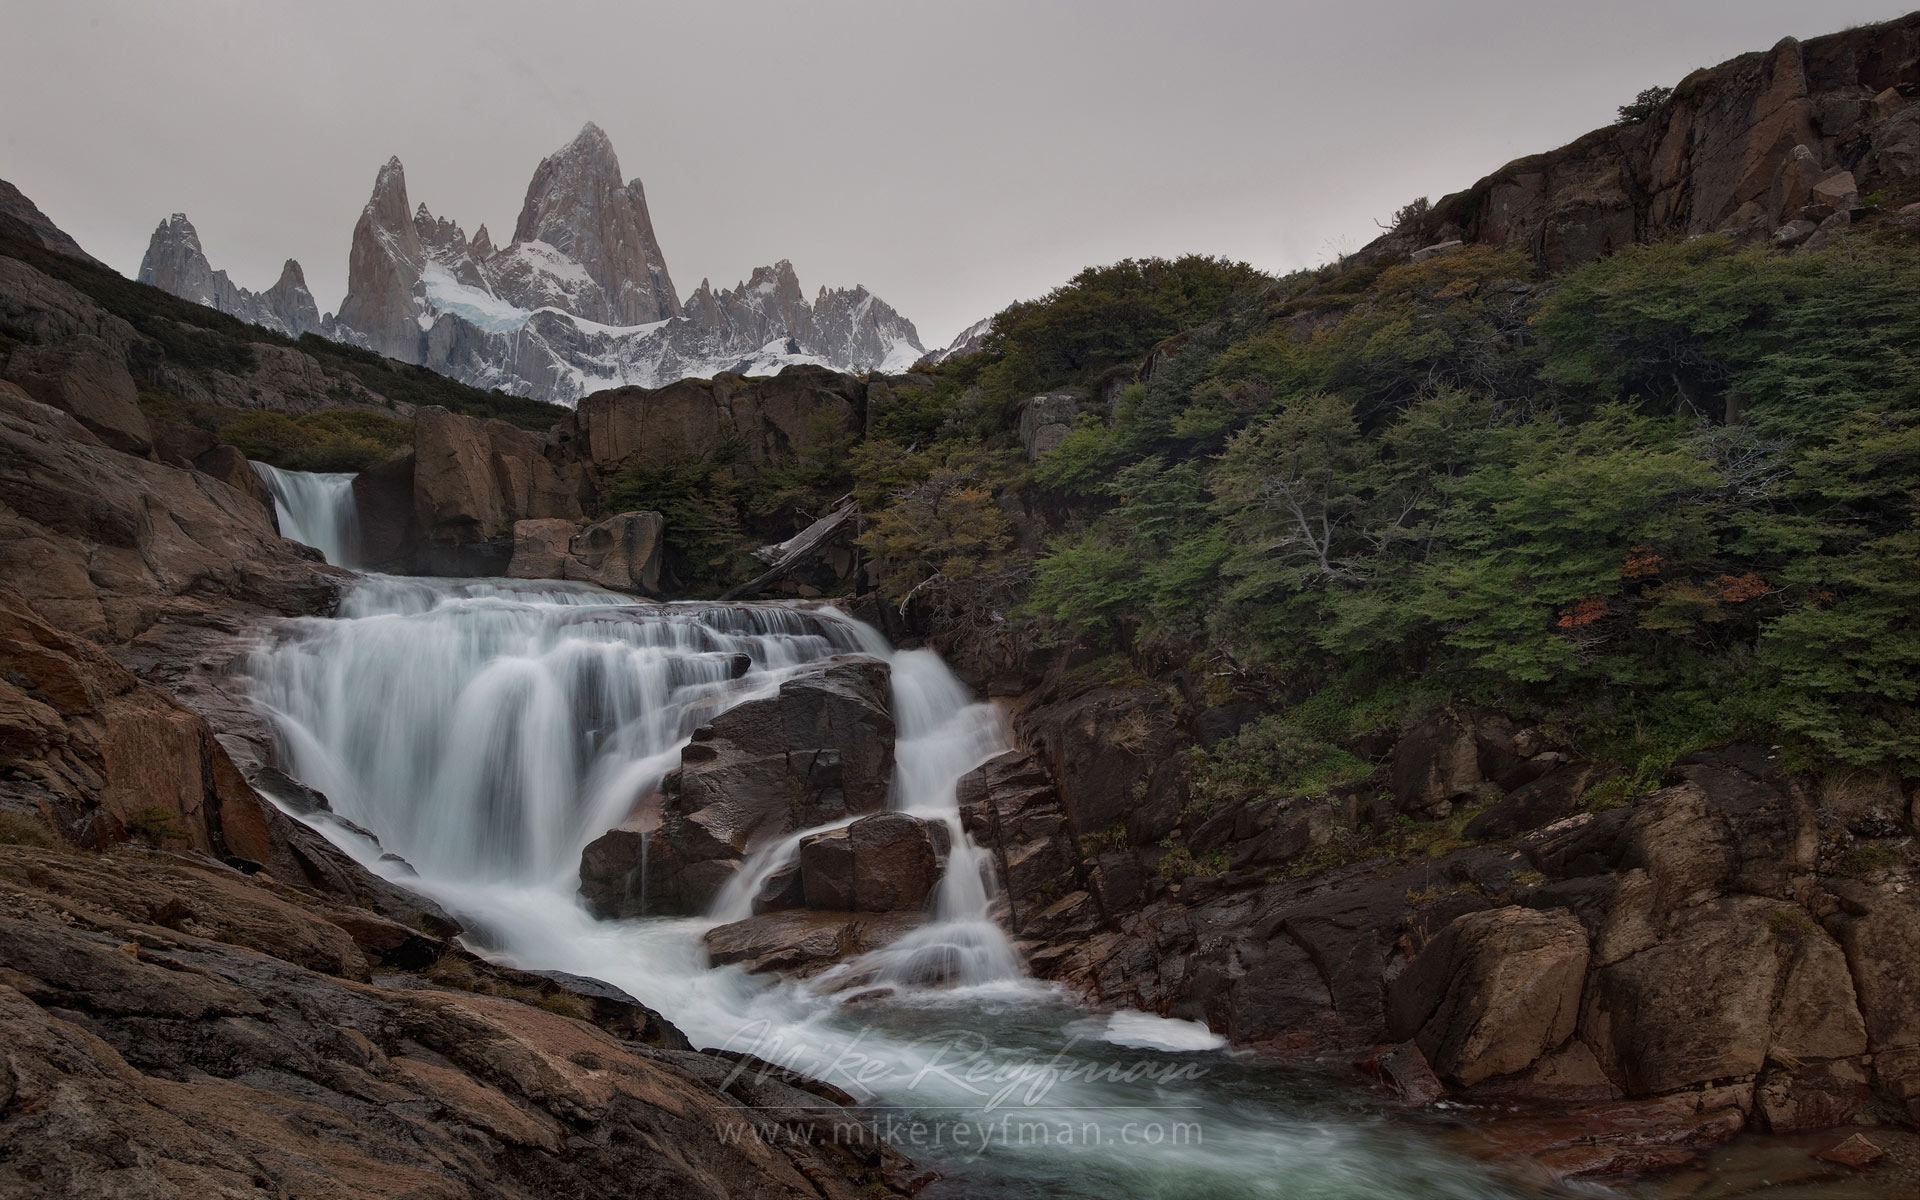 Gray Day. Waterfall on the Arroyo Del Salto River below Mount Fitzroy. Los Glaciares National Park, Patagonia, Argentina. - Fitzroy-Cerro-Torre-Perito-Moreno-Patagonia-Argentina - Mike Reyfman Photography